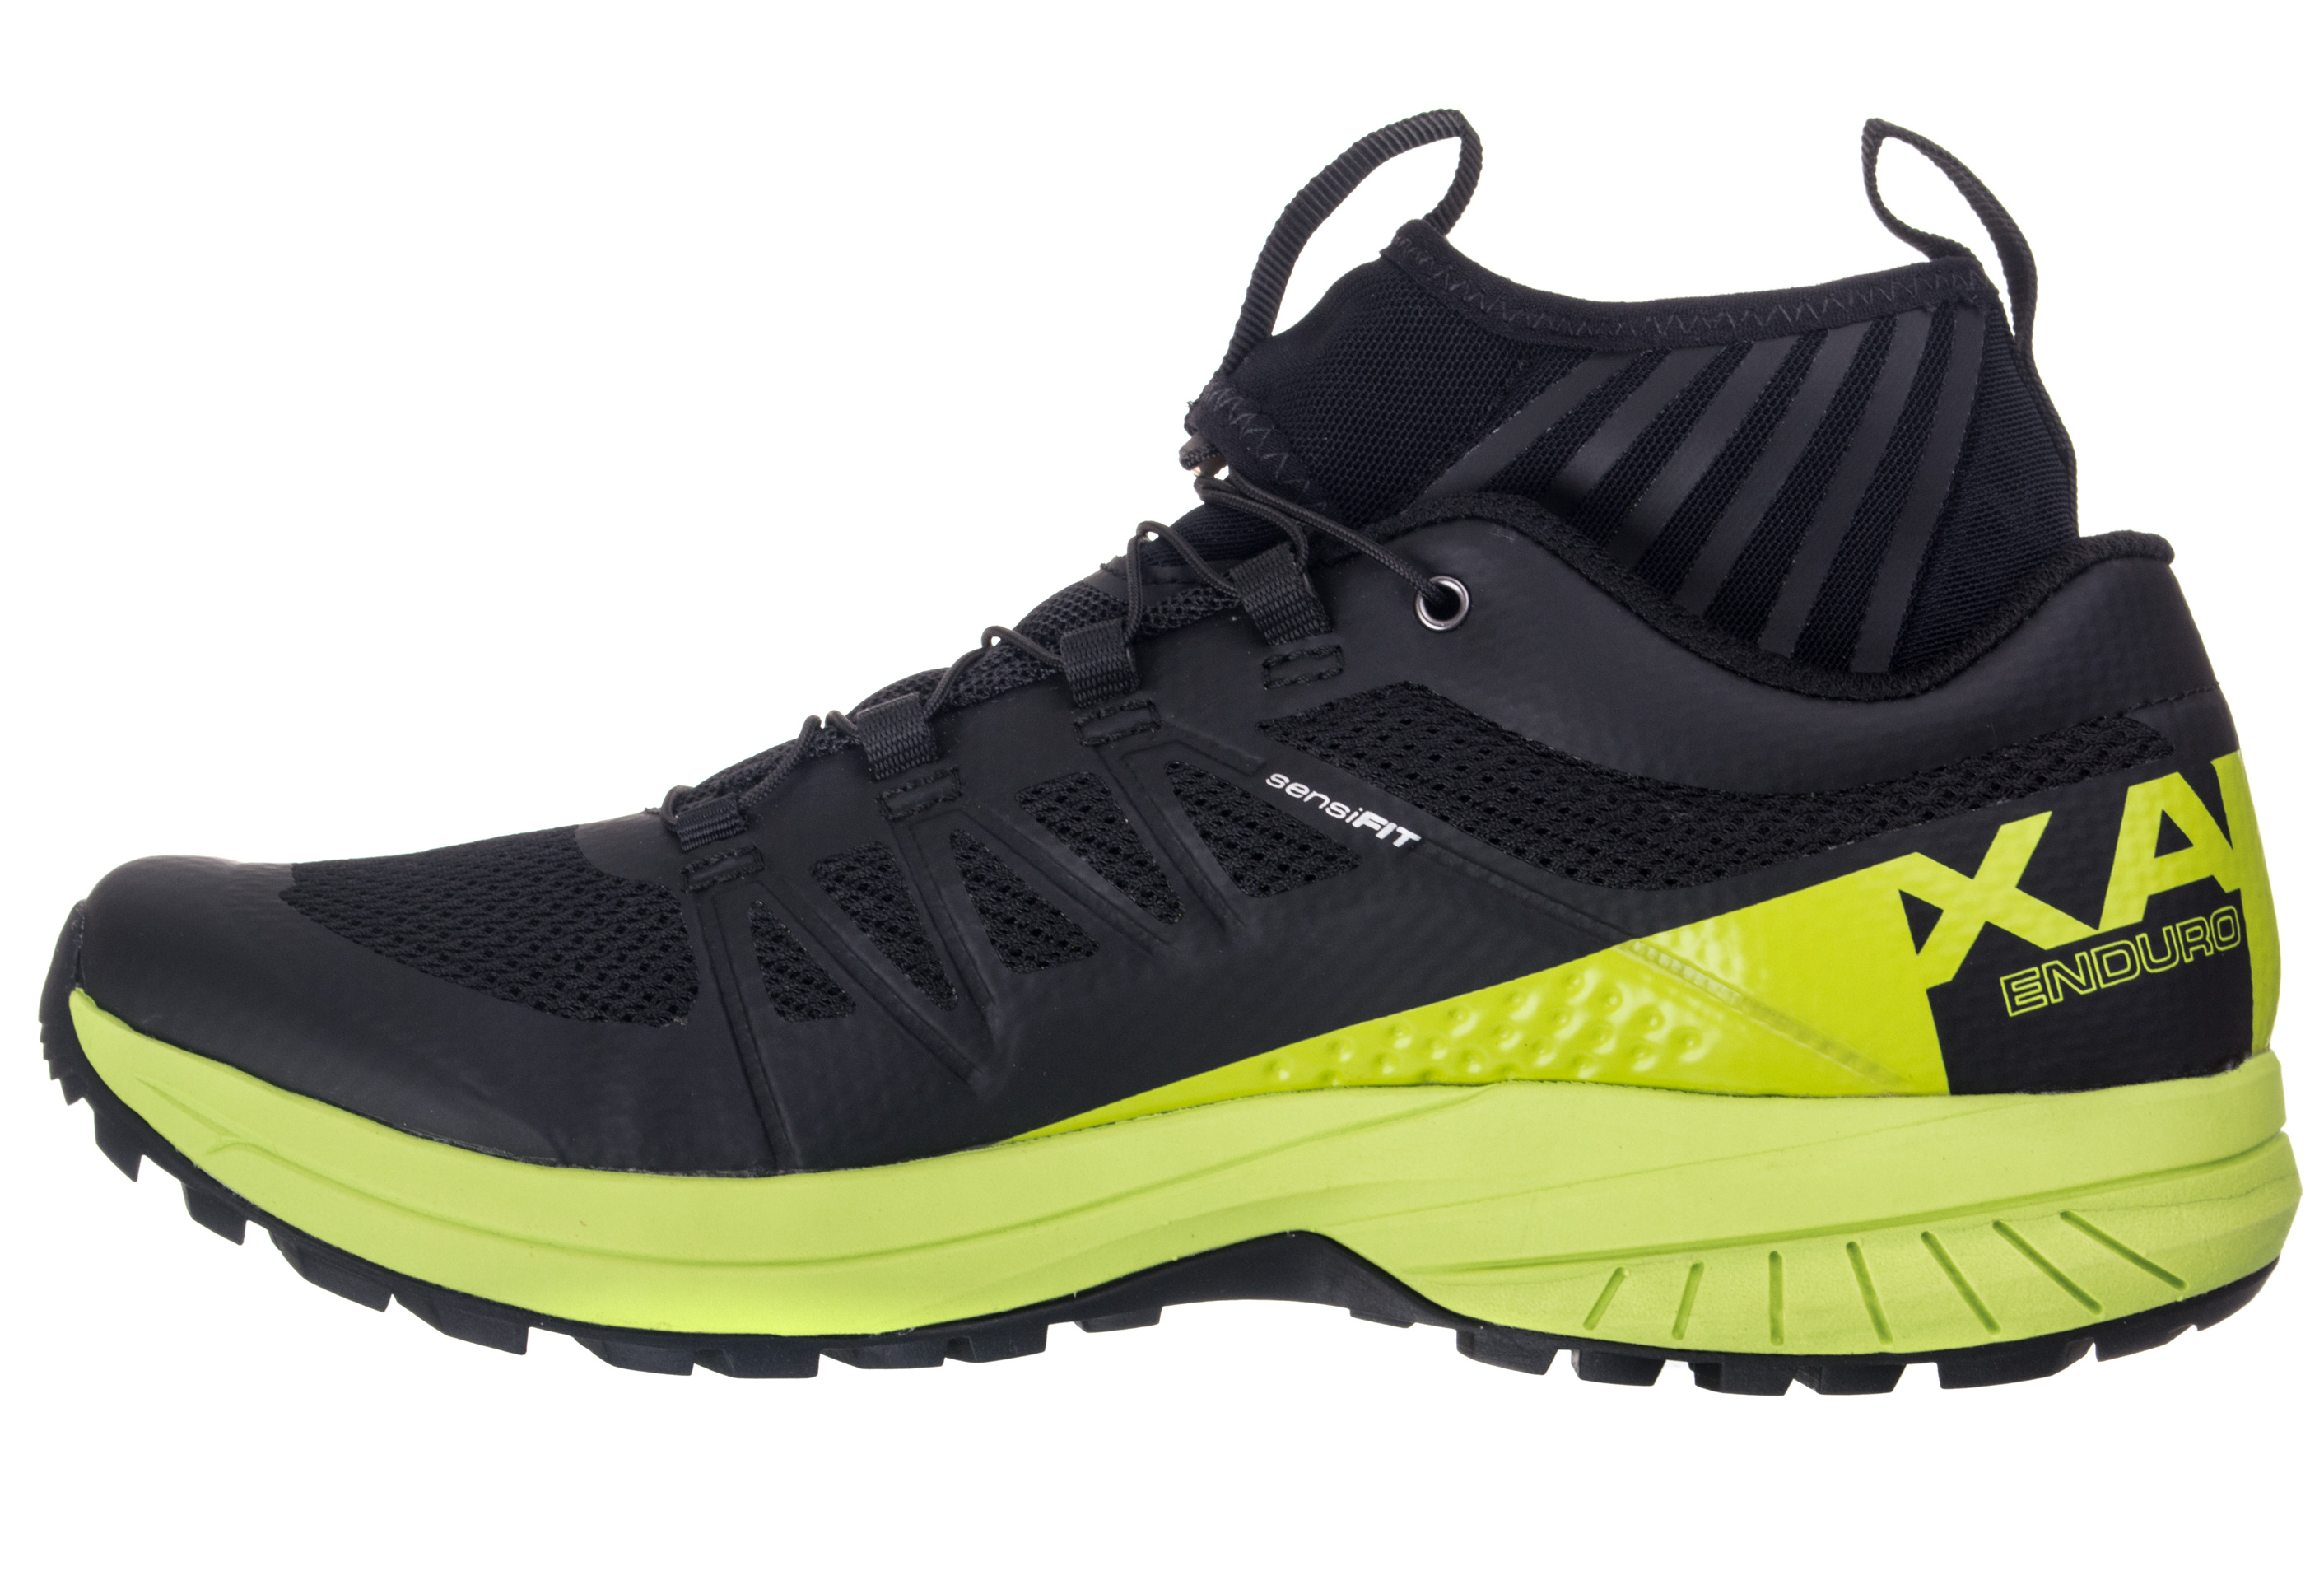 salomon xa enduro shoes black green. Black Bedroom Furniture Sets. Home Design Ideas